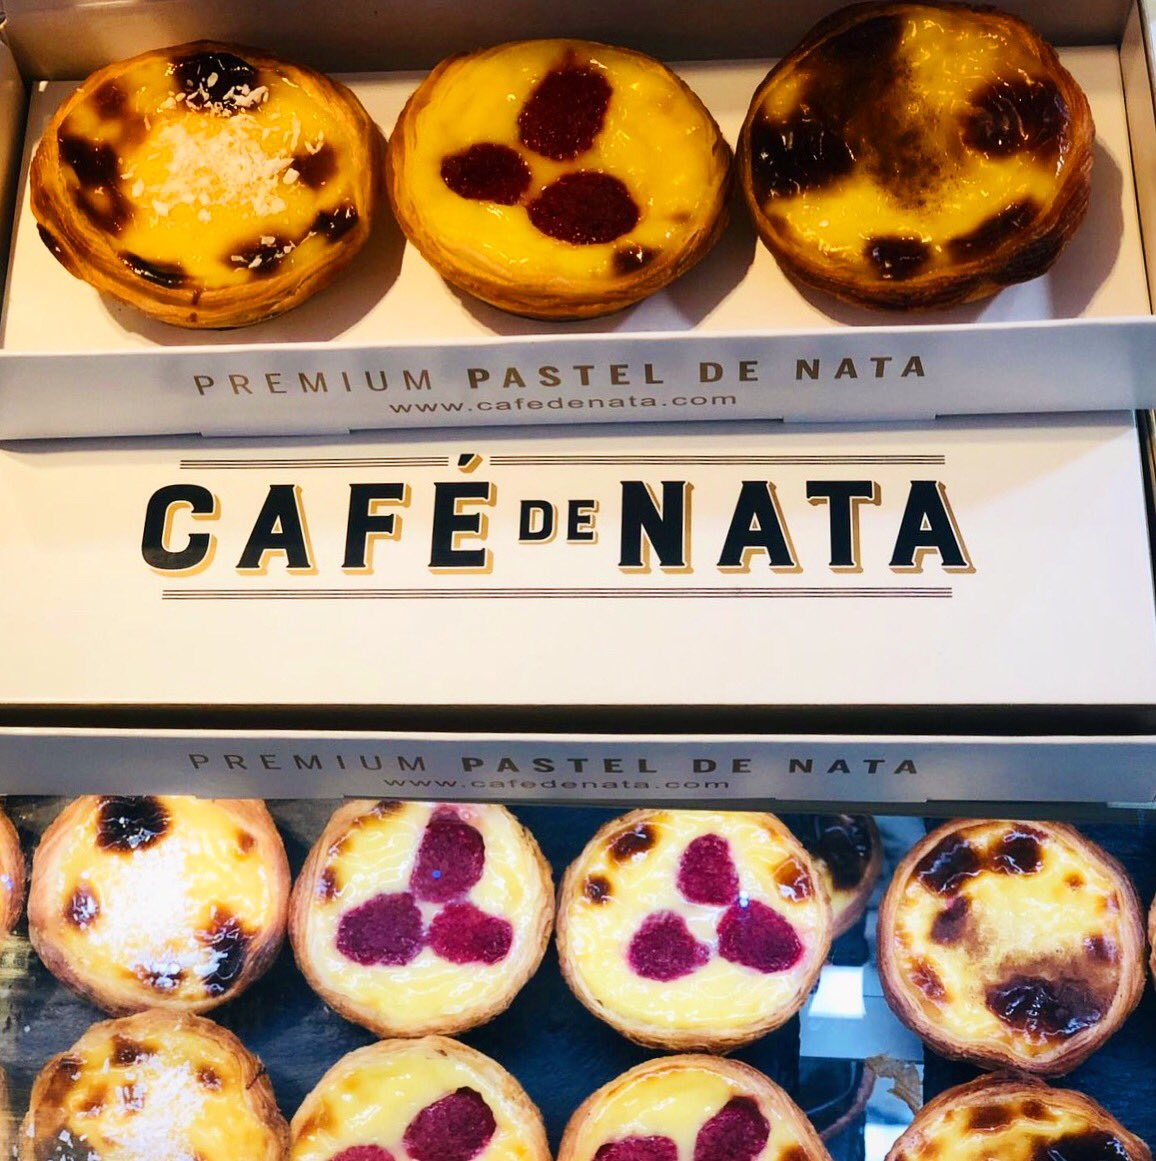 If Friday had a face this is what it would look like!! ☕️🥧   #cafedenata #london #southkensington #hammersmith #soho #watchthisspace #portugal #pasteisdenata #saudades #deliciosos #delicious #fresh #freshlybaked #crispy #warm #smooth #instagood #foodie #friday #weekendvibes